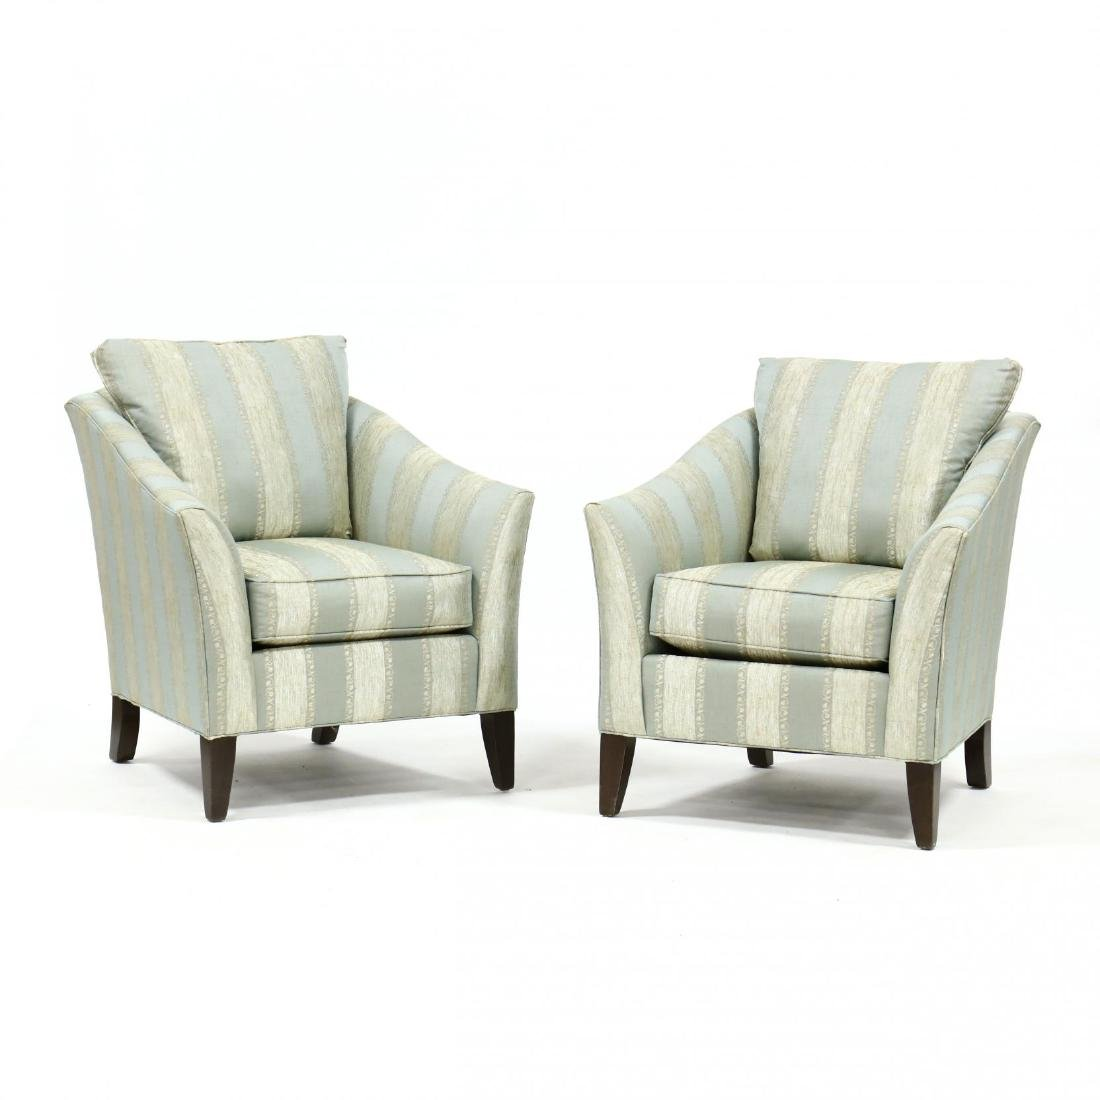 Ethan Allen, Pair of Club Chairs